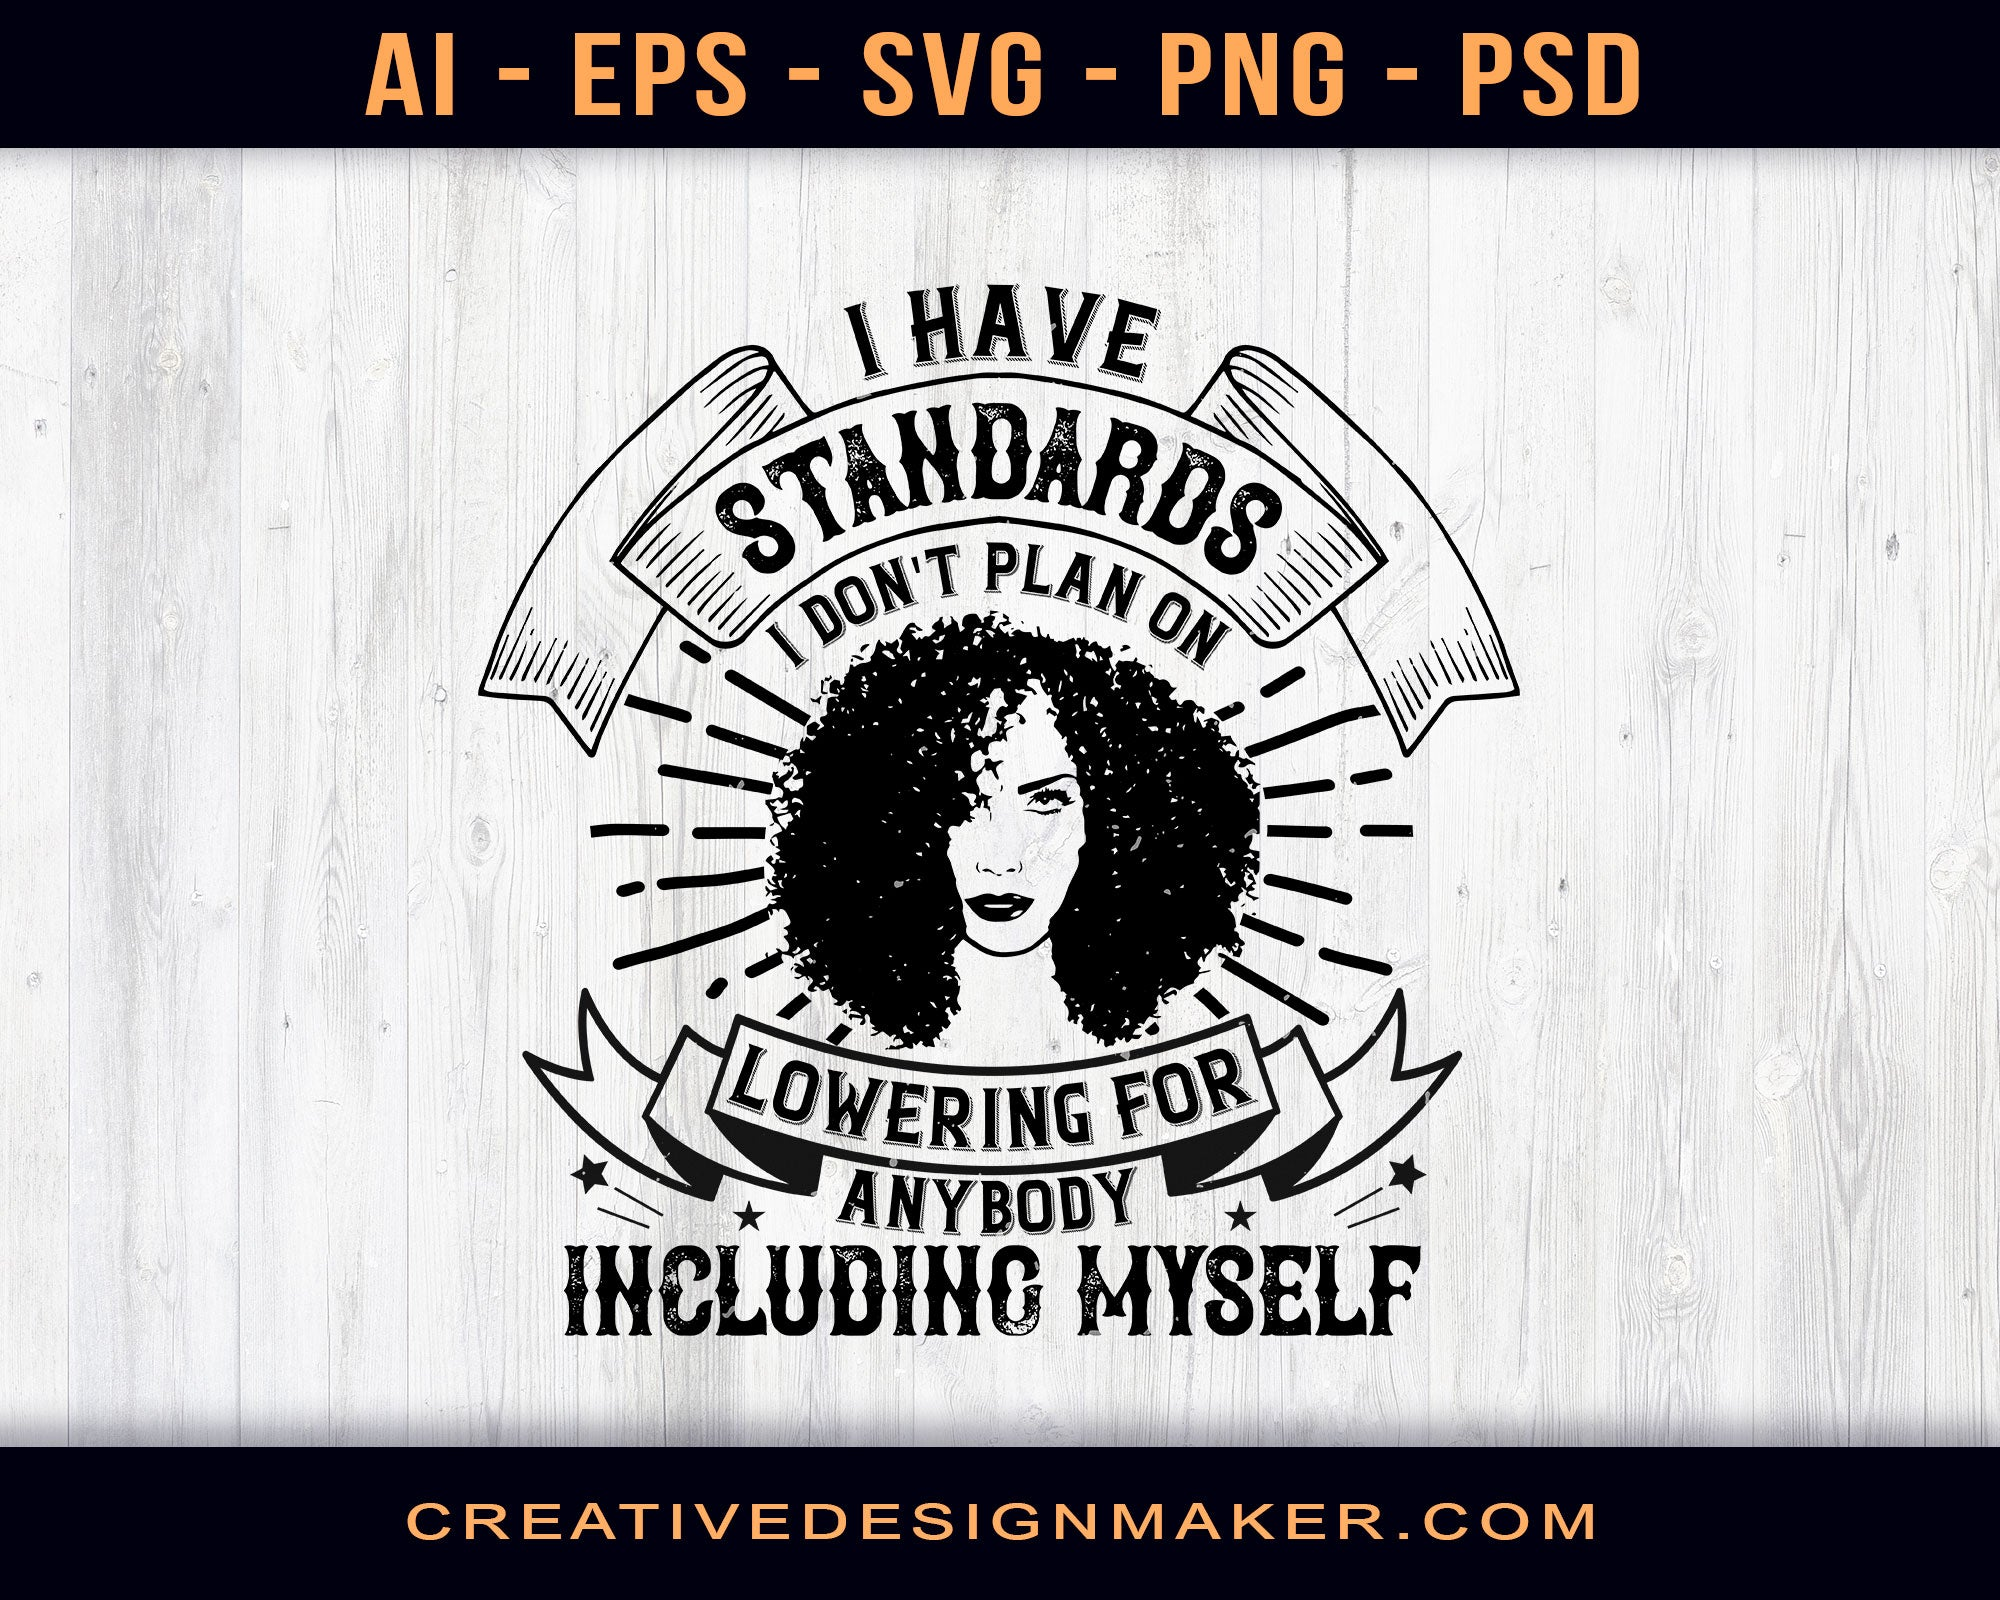 I Have Standards I Don't Plan On Lowering For Anybody Including Myself Afro Print Ready Editable T-Shirt SVG Design!